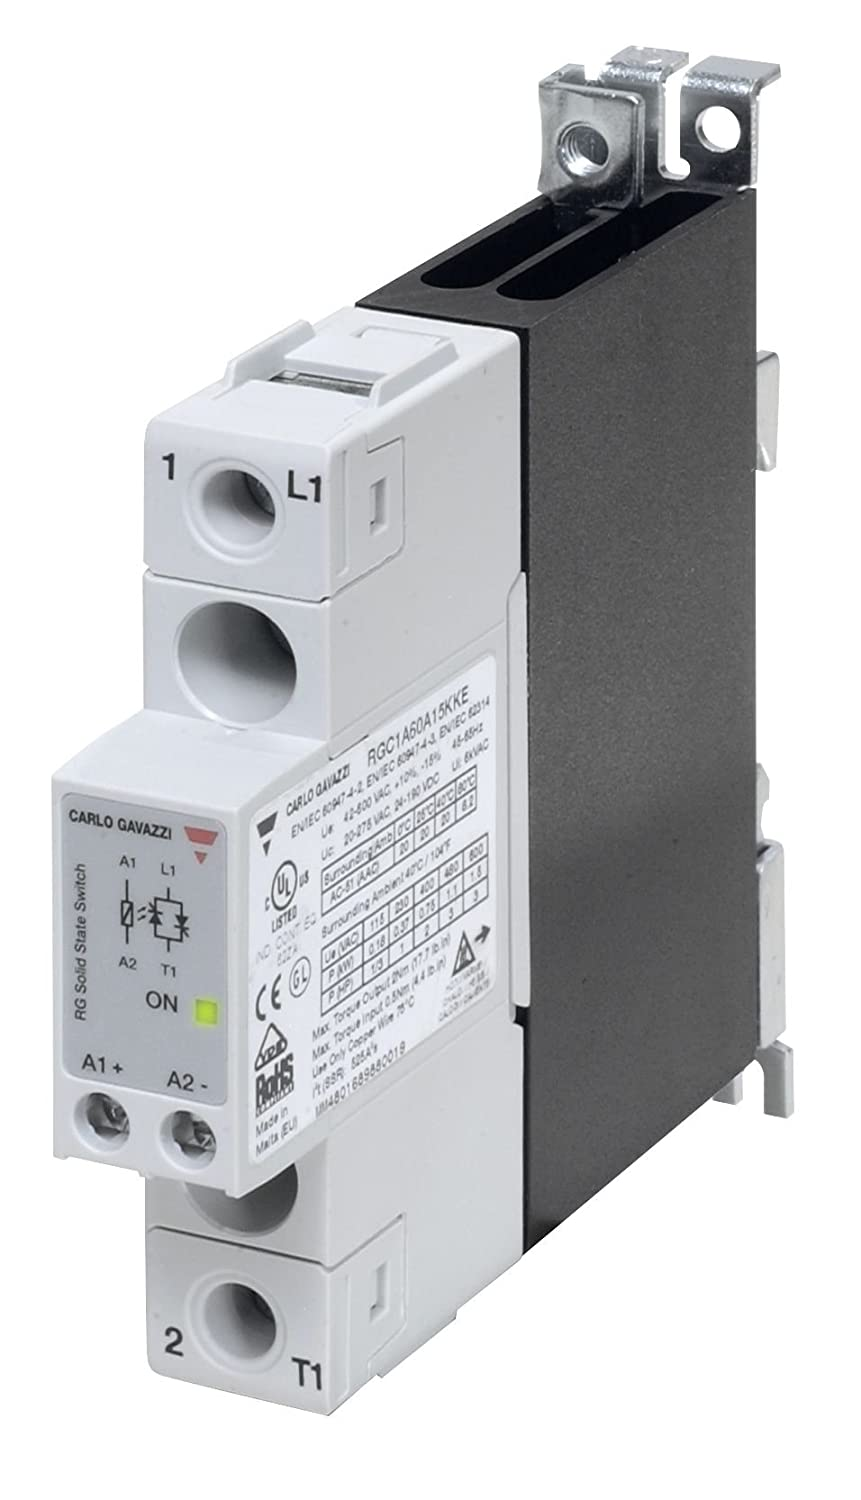 CARLO GAVAZZI RGC1A60D15KGU Solid State Relay and Contactor, Slim 17.5 mm Width, Maximum 20 amp AC Switching, Up to 3 hp Rated, 3-32 VDC Control Voltage, 42-600 VAC Switching, 1200 Vp Blocking Voltage, IP20 Cover, Diagnostic LEDs, 9.2 oz. Size, 27 mm Height x 150 mm Width x 186 mm Diameter